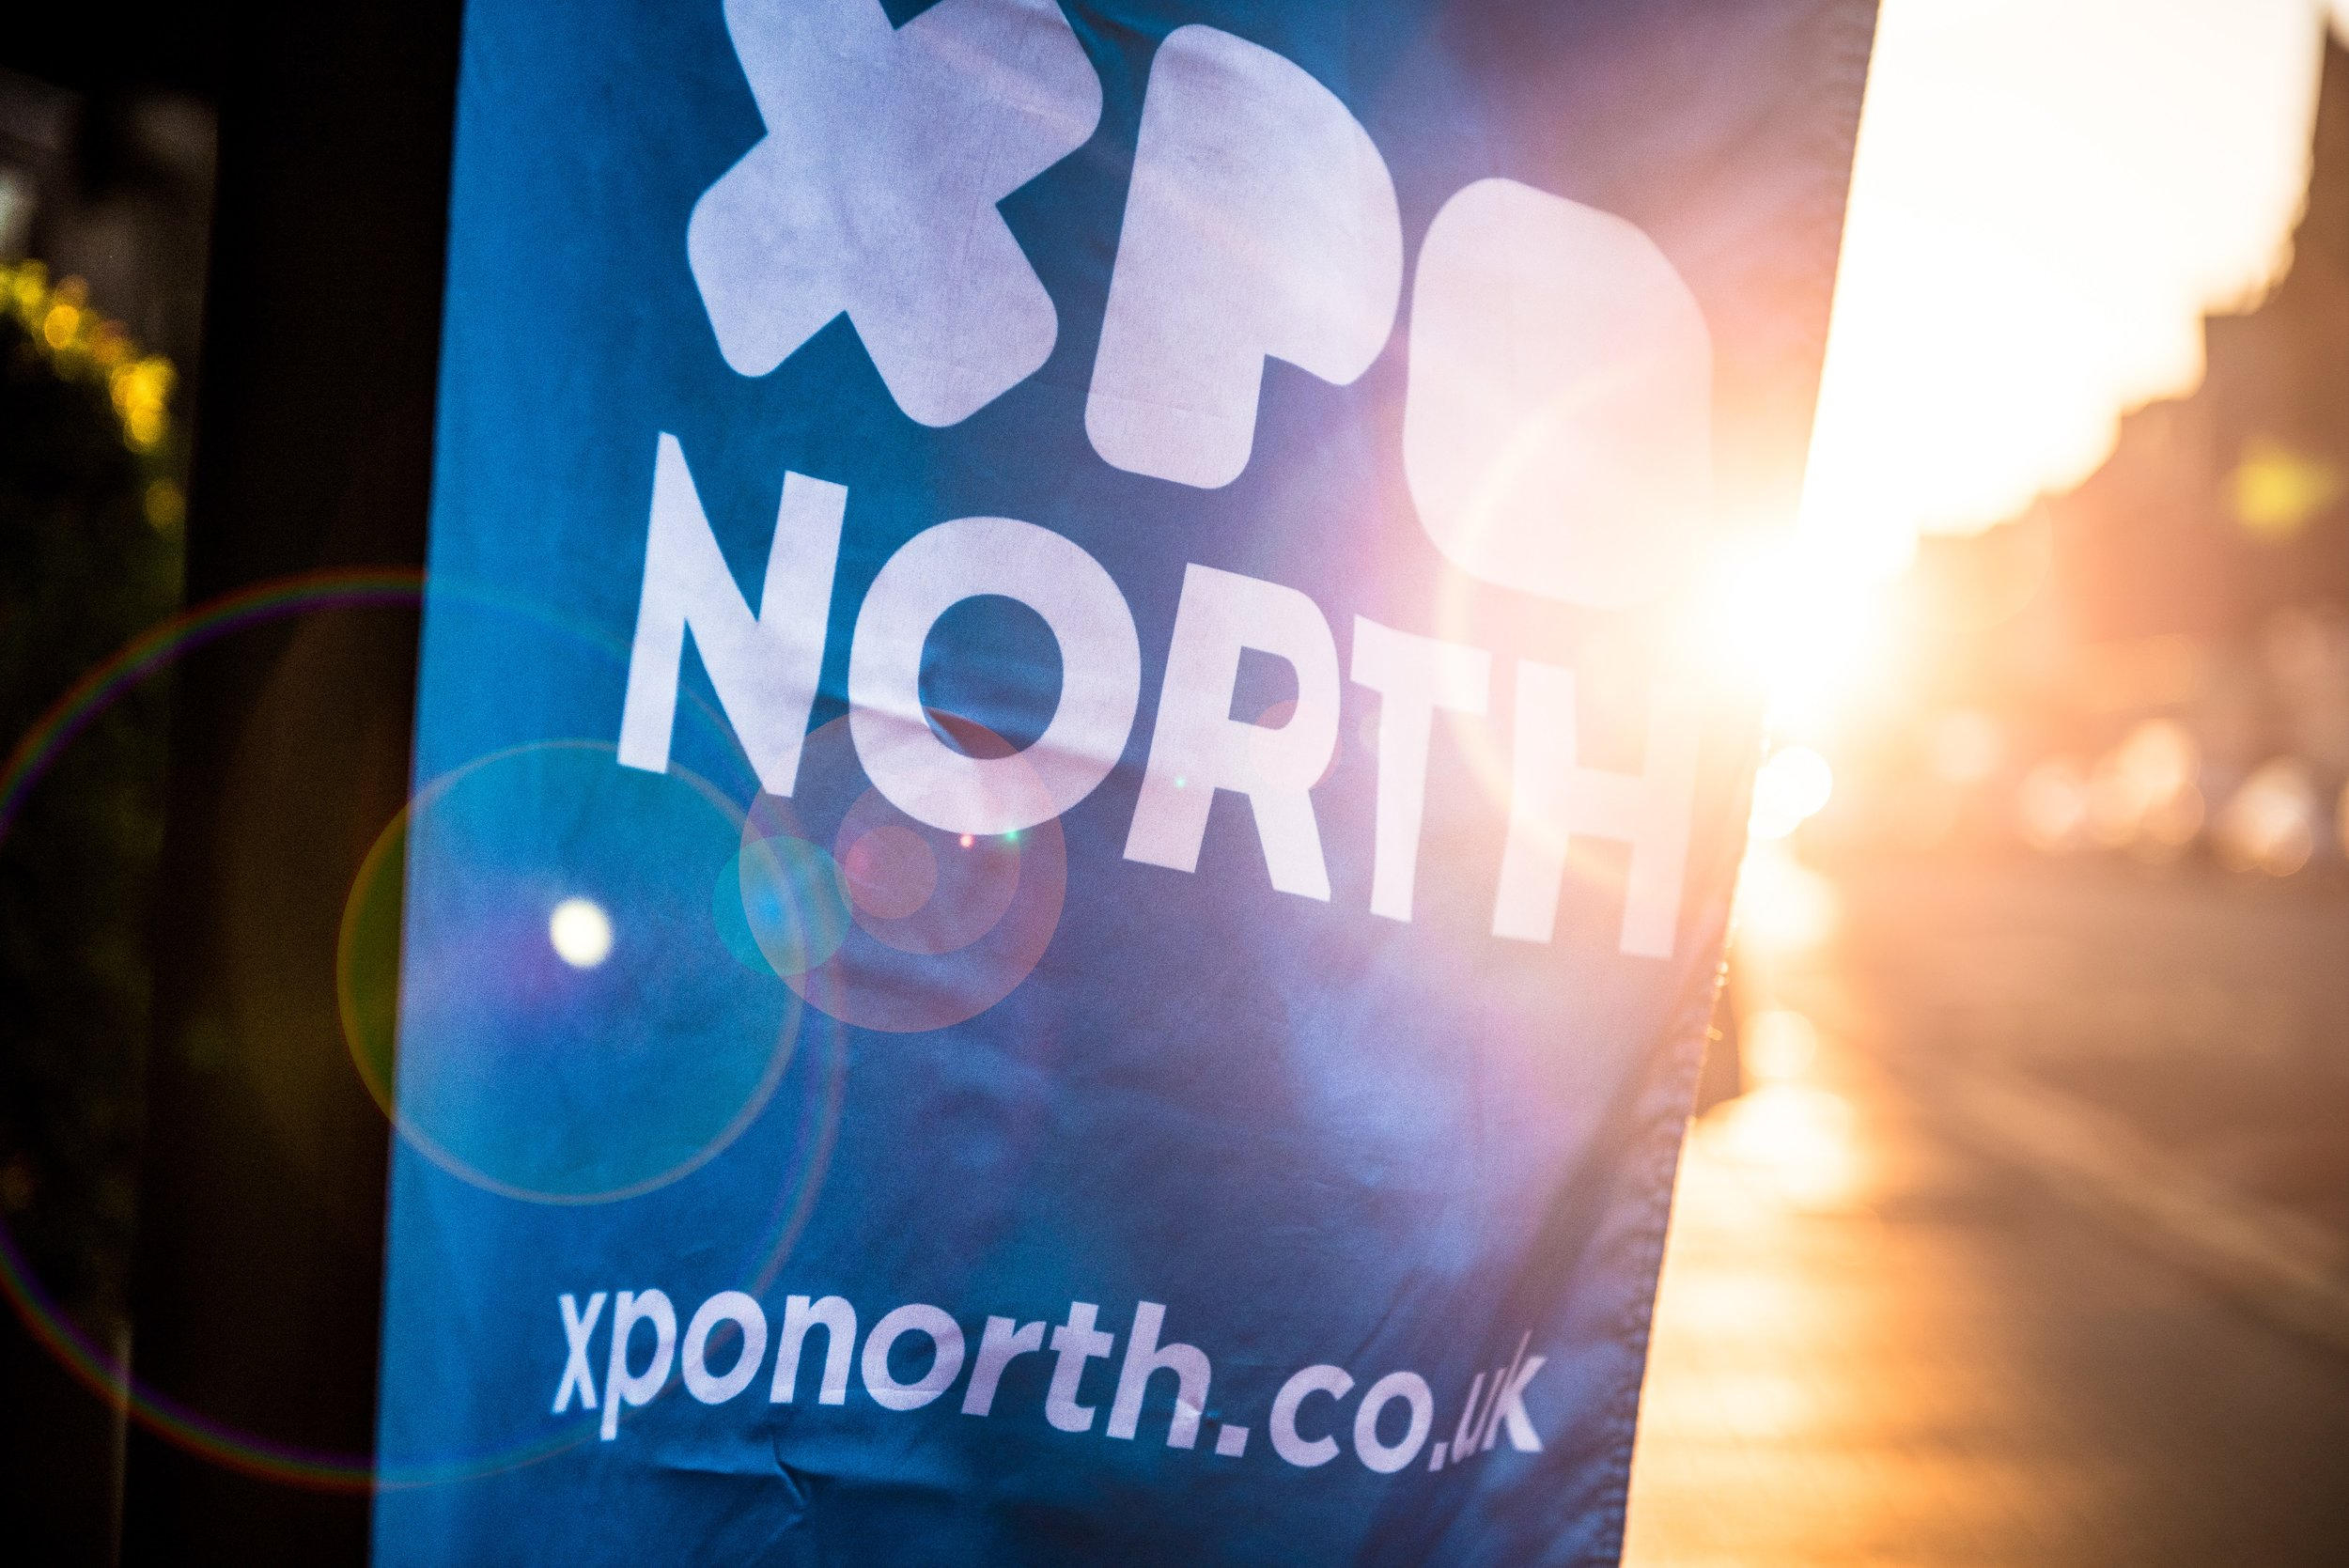 XpoNorth - Since 2018 Genuine provide ongoing dynamic PR and cross-platform promotional strategies to increase the visibility of the conference and showcase event.